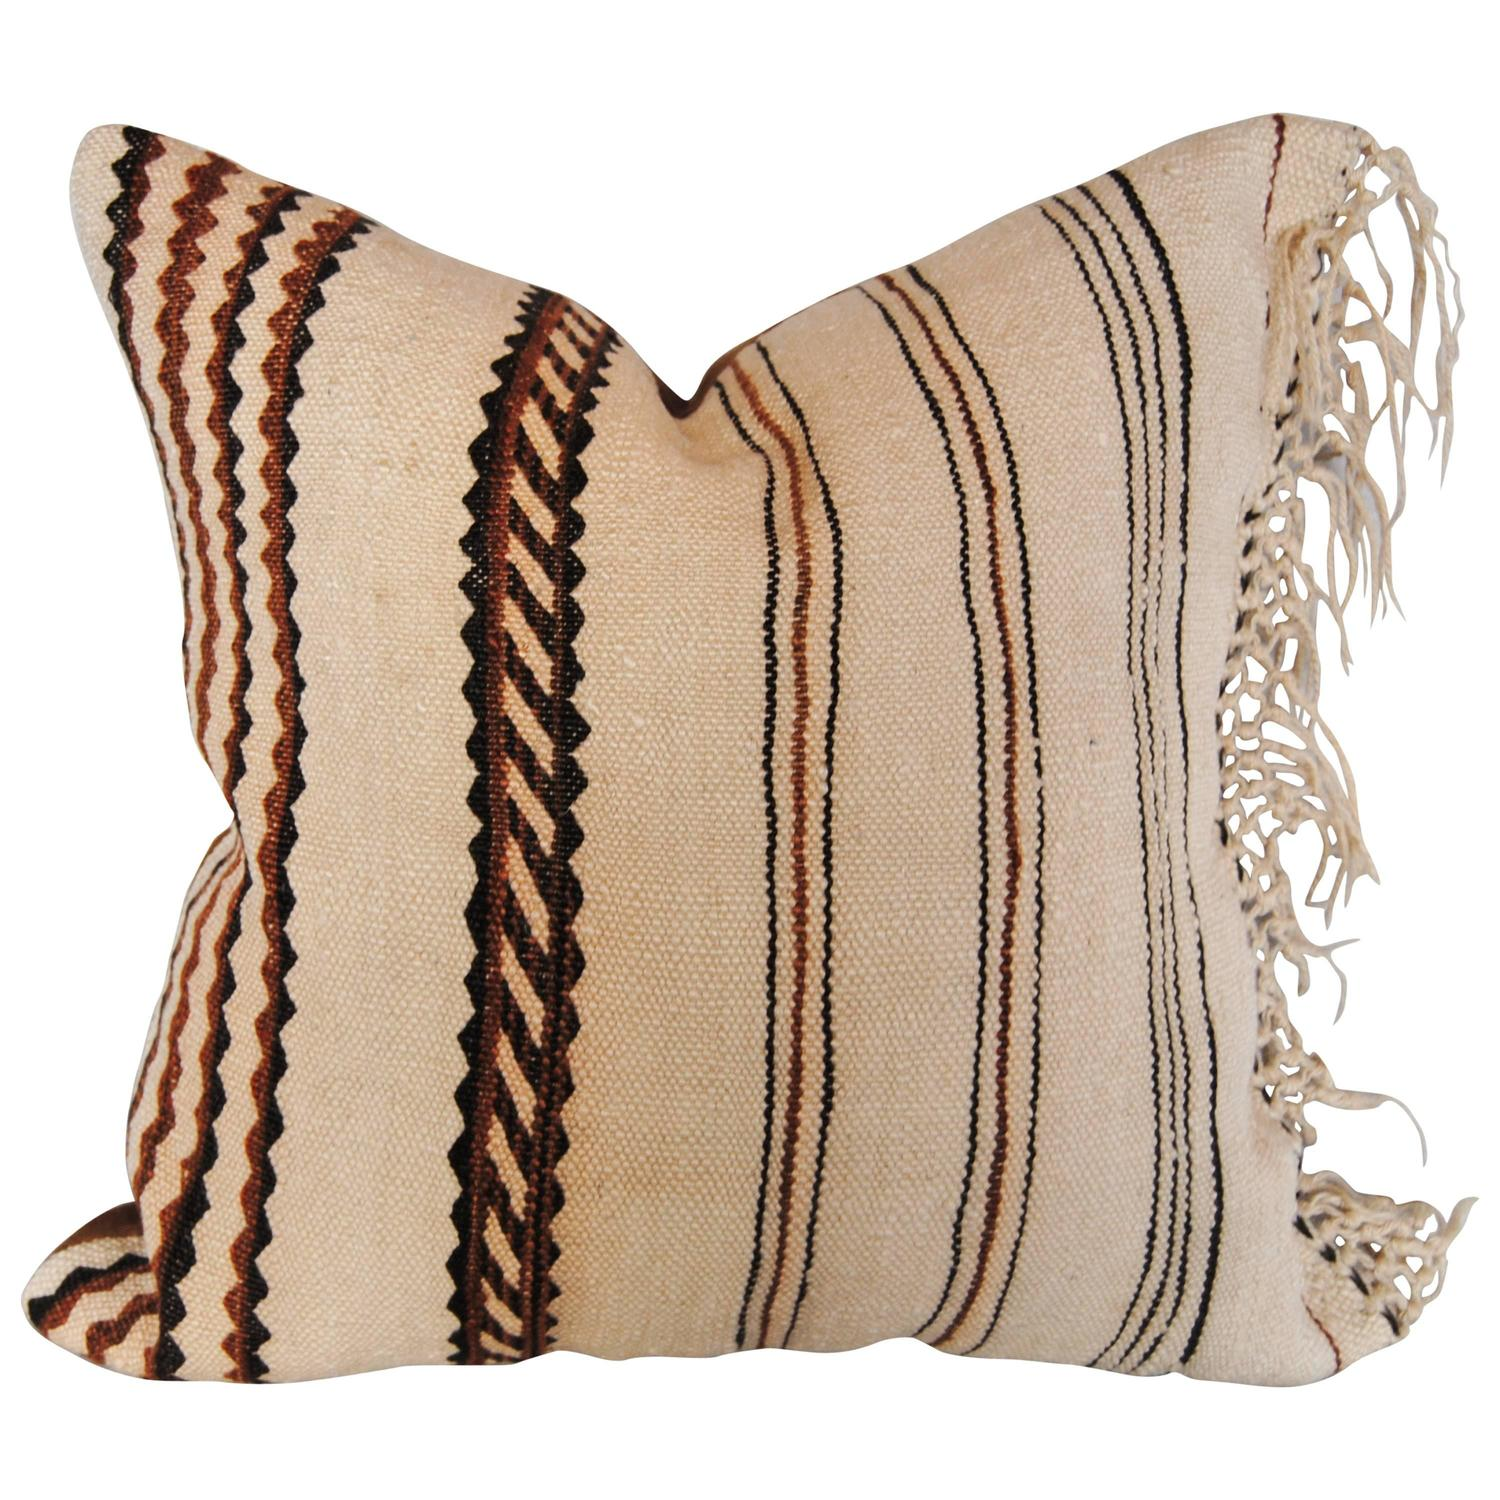 Custom Pillow Cut From A Vintage Moroccan Berber Rug From